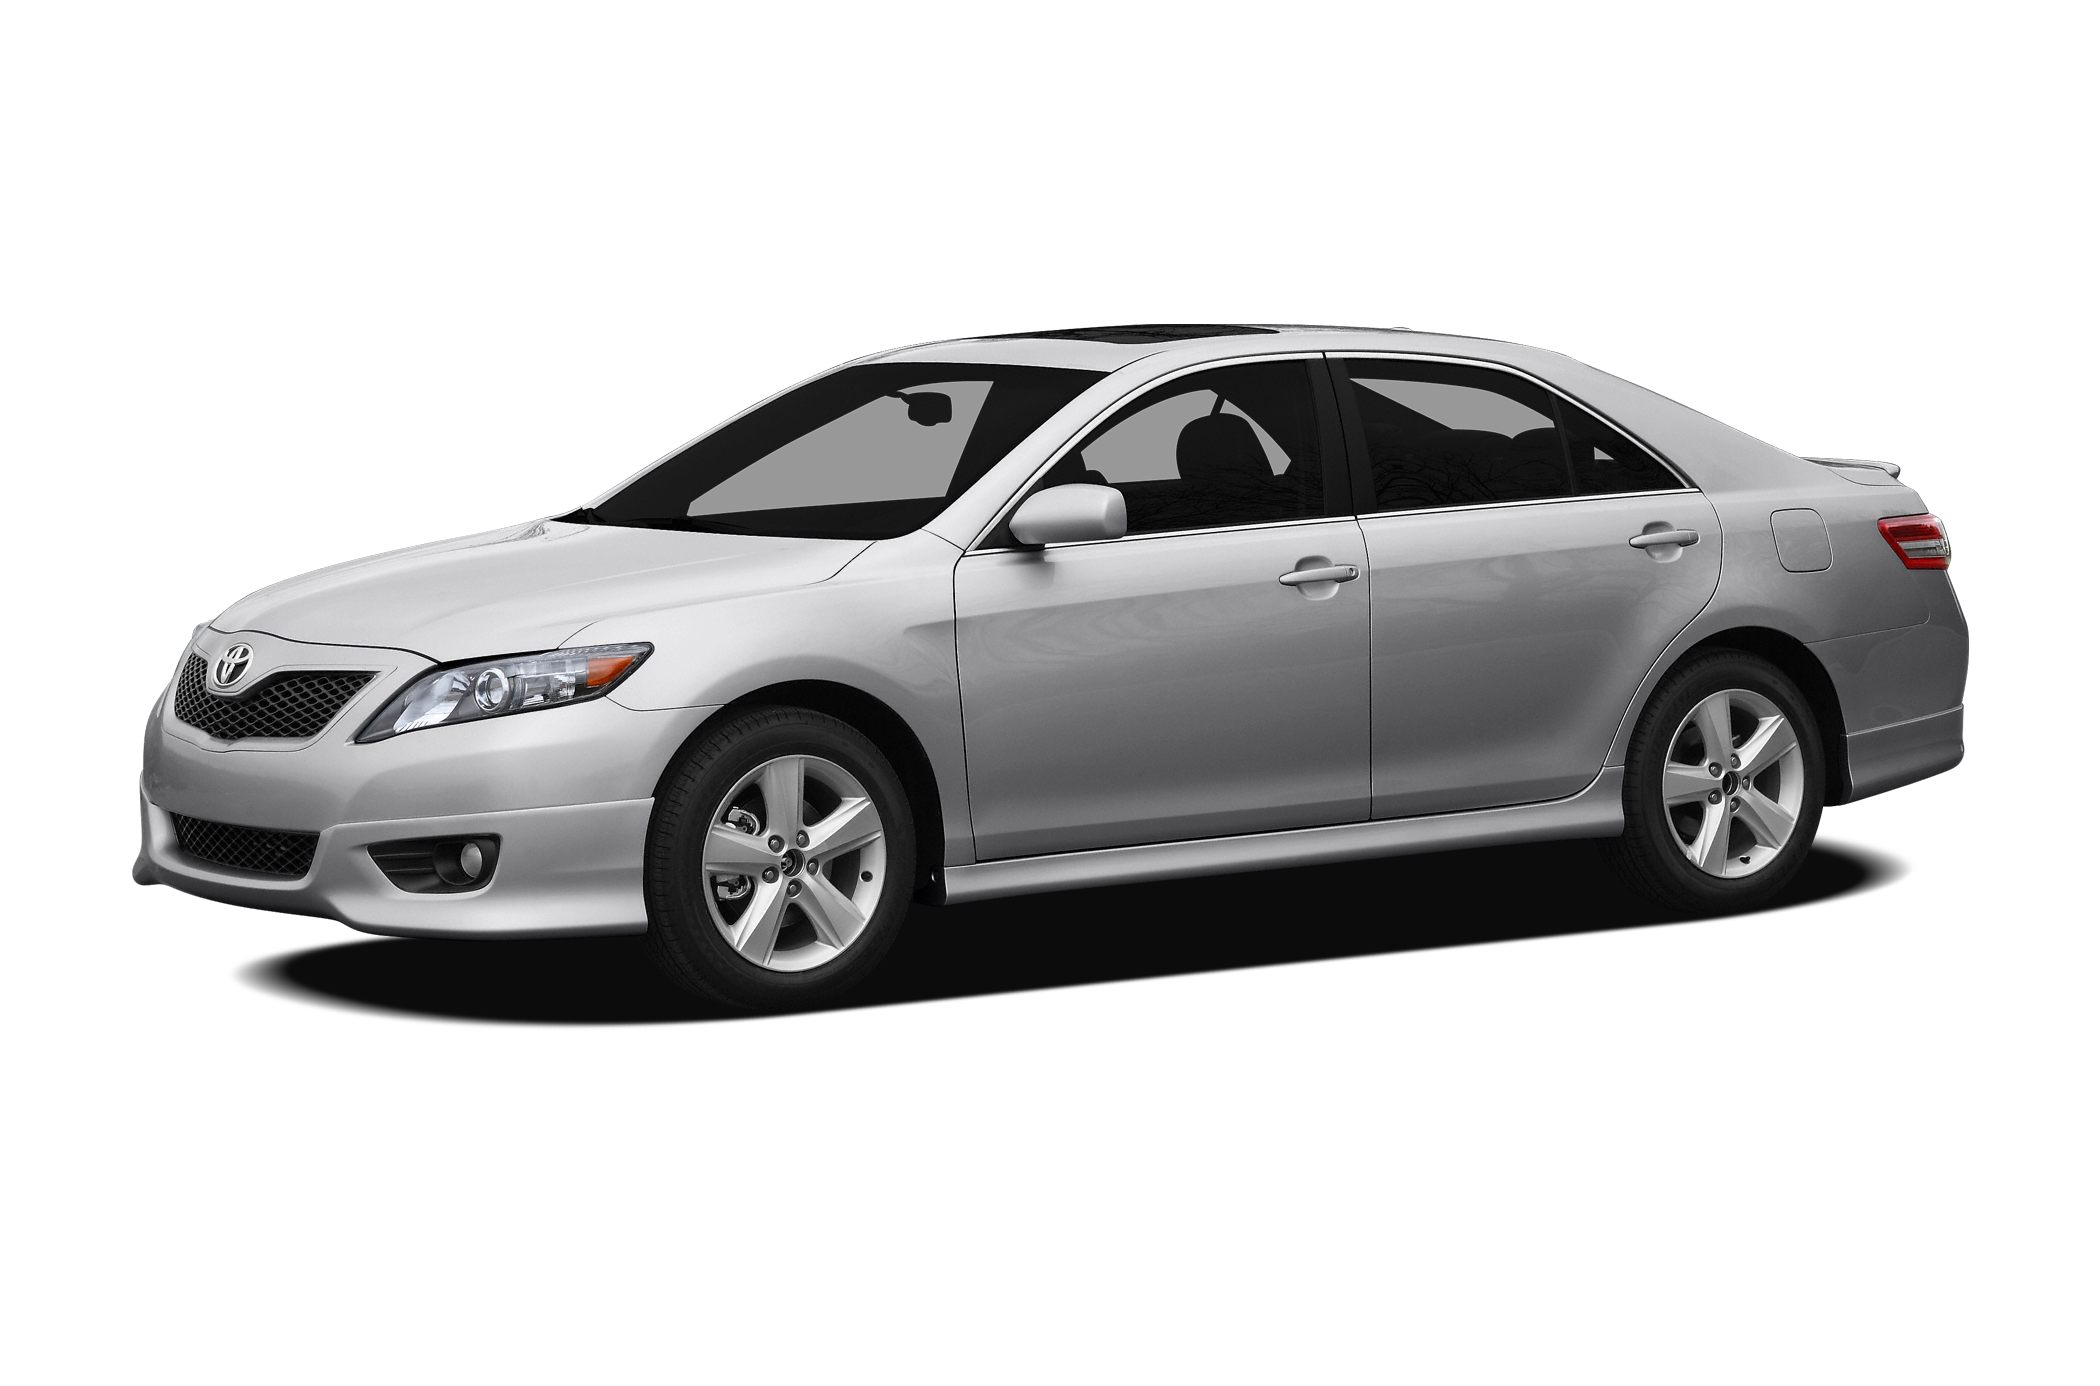 2011 Toyota Camry LE LE trim GREAT MILES 38199 PRICED TO MOVE 300 below Kelley Blue Book EPA